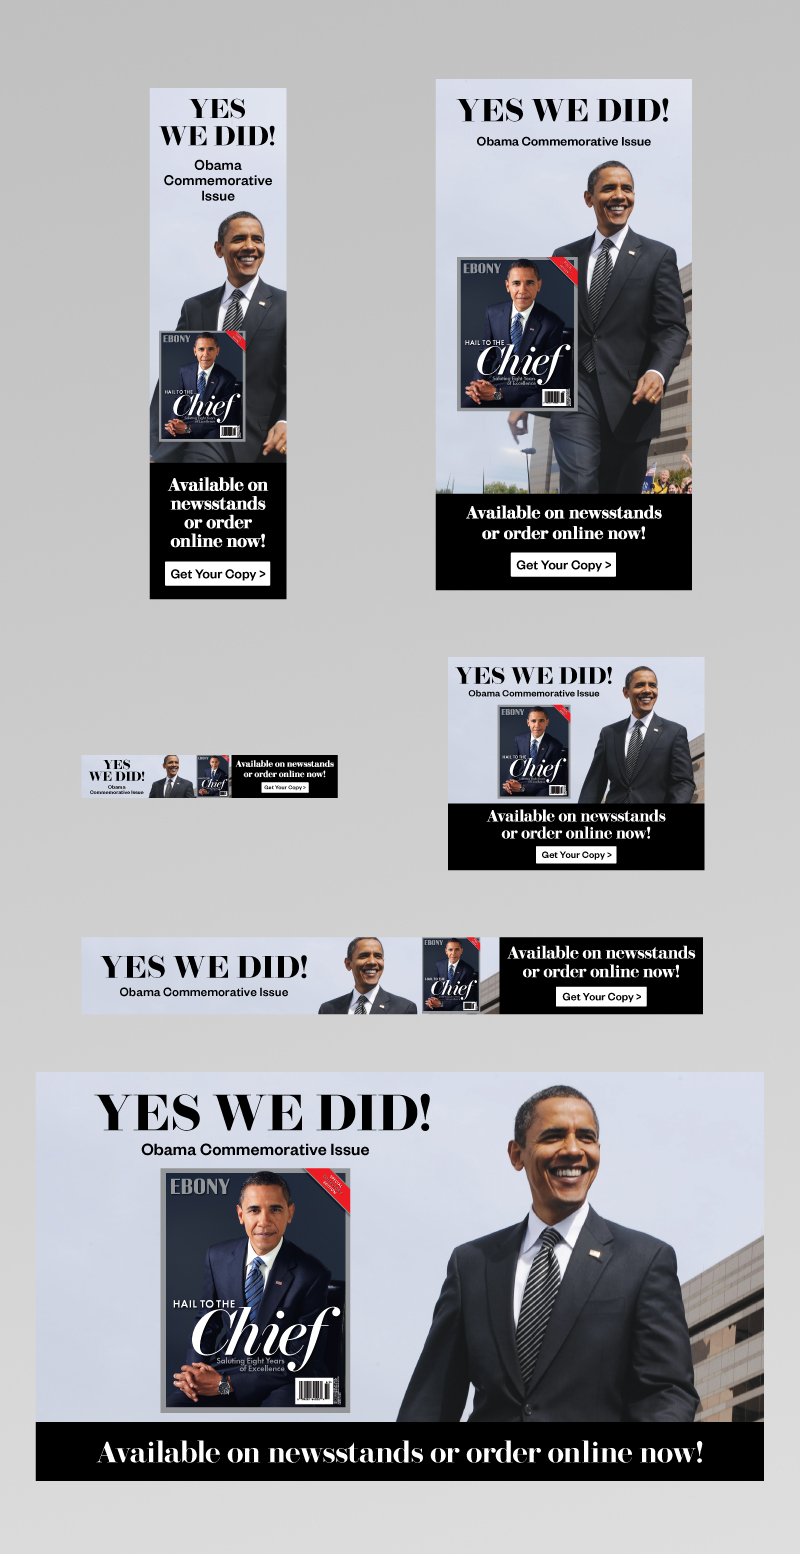 obama-web-banners-800-1554